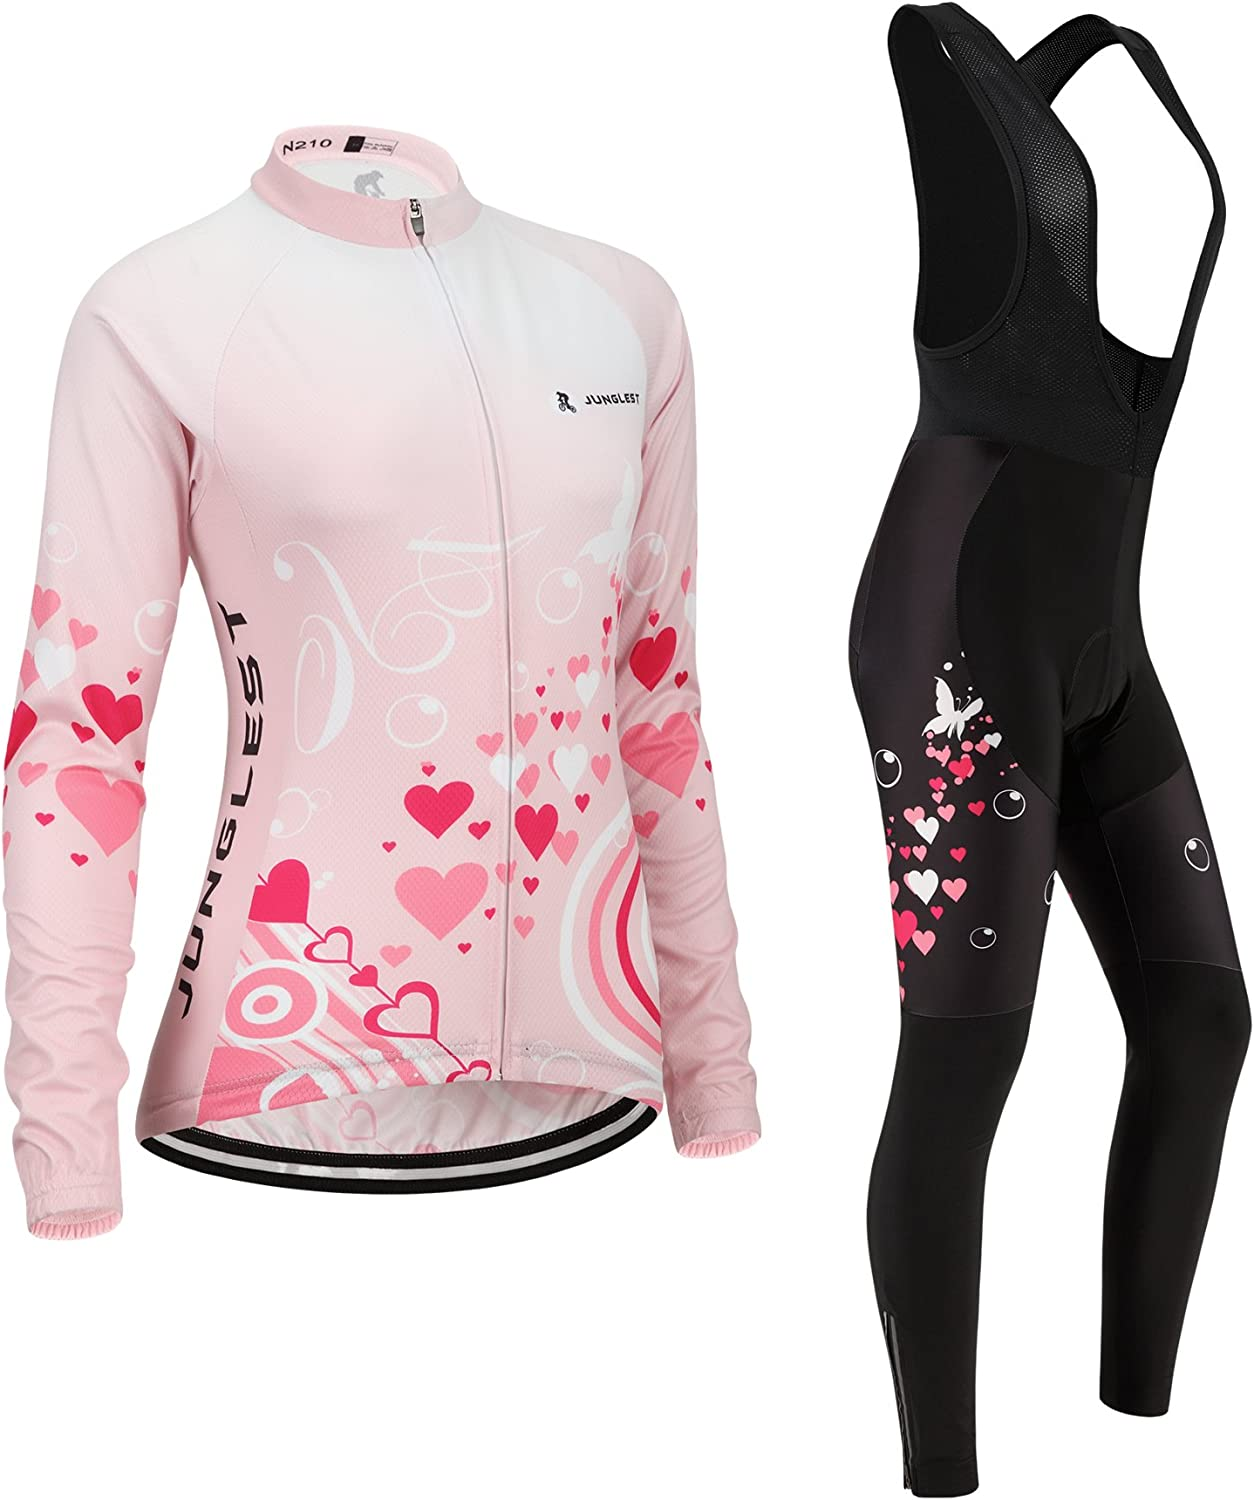 Cycling jersey Set, Maillot de Cyclisme Women Femme Long sleeve Manches Longues(S5XL,option bib Cuissard,3D pad Coussin) N210